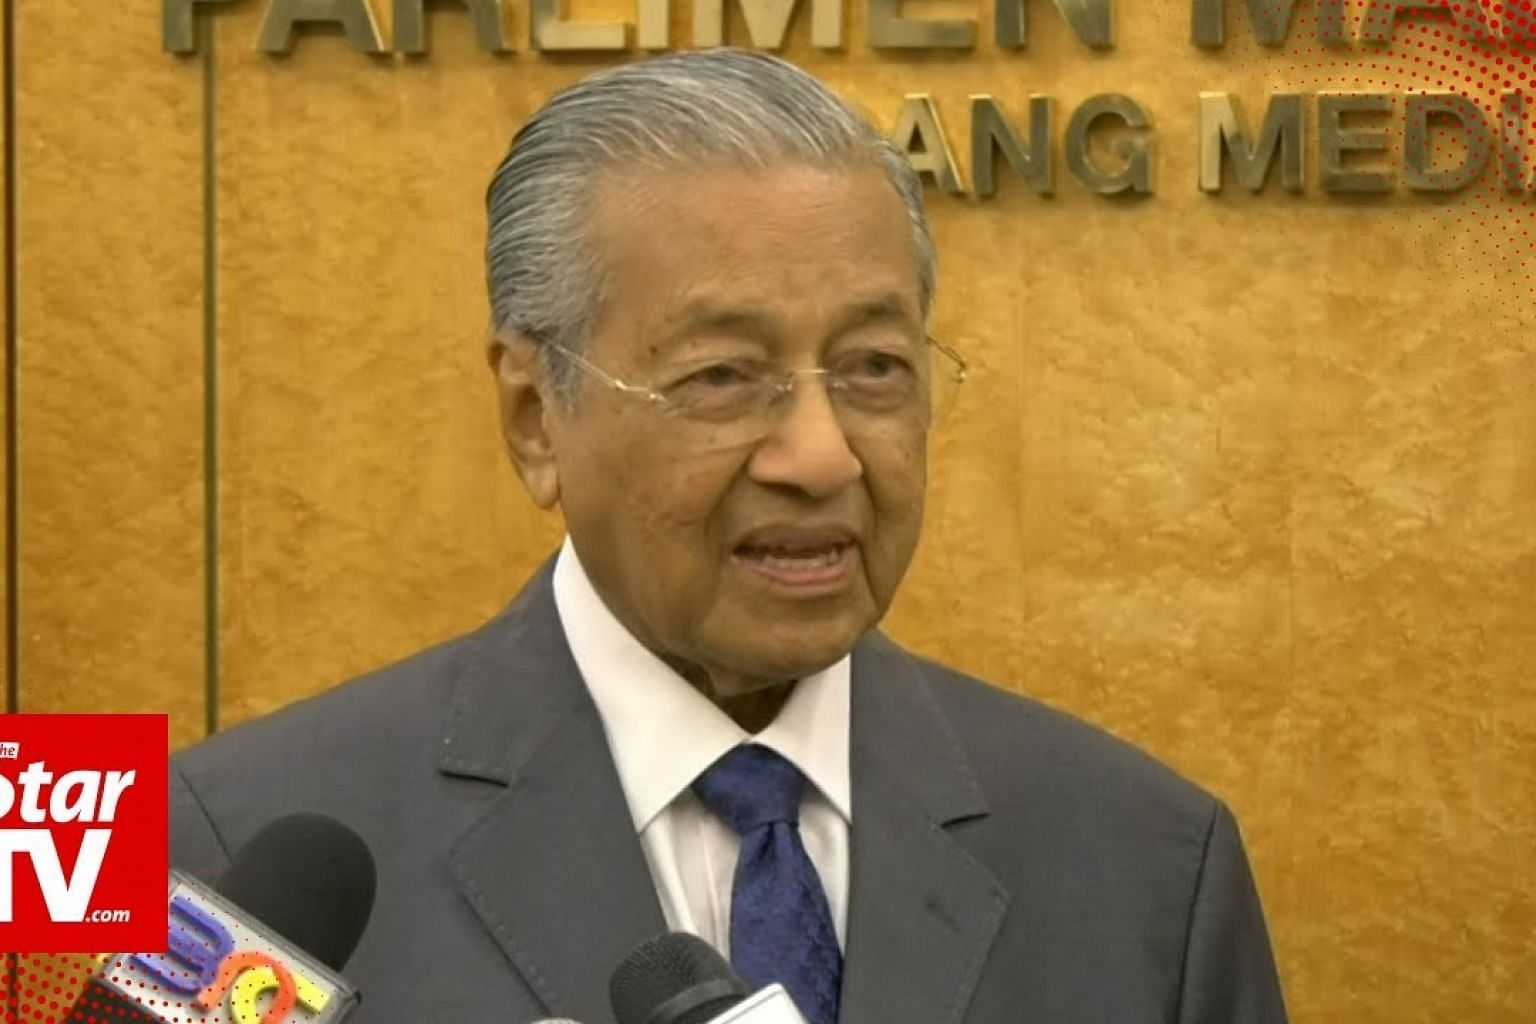 More govt assets could be sold to manage national debt, says Dr M